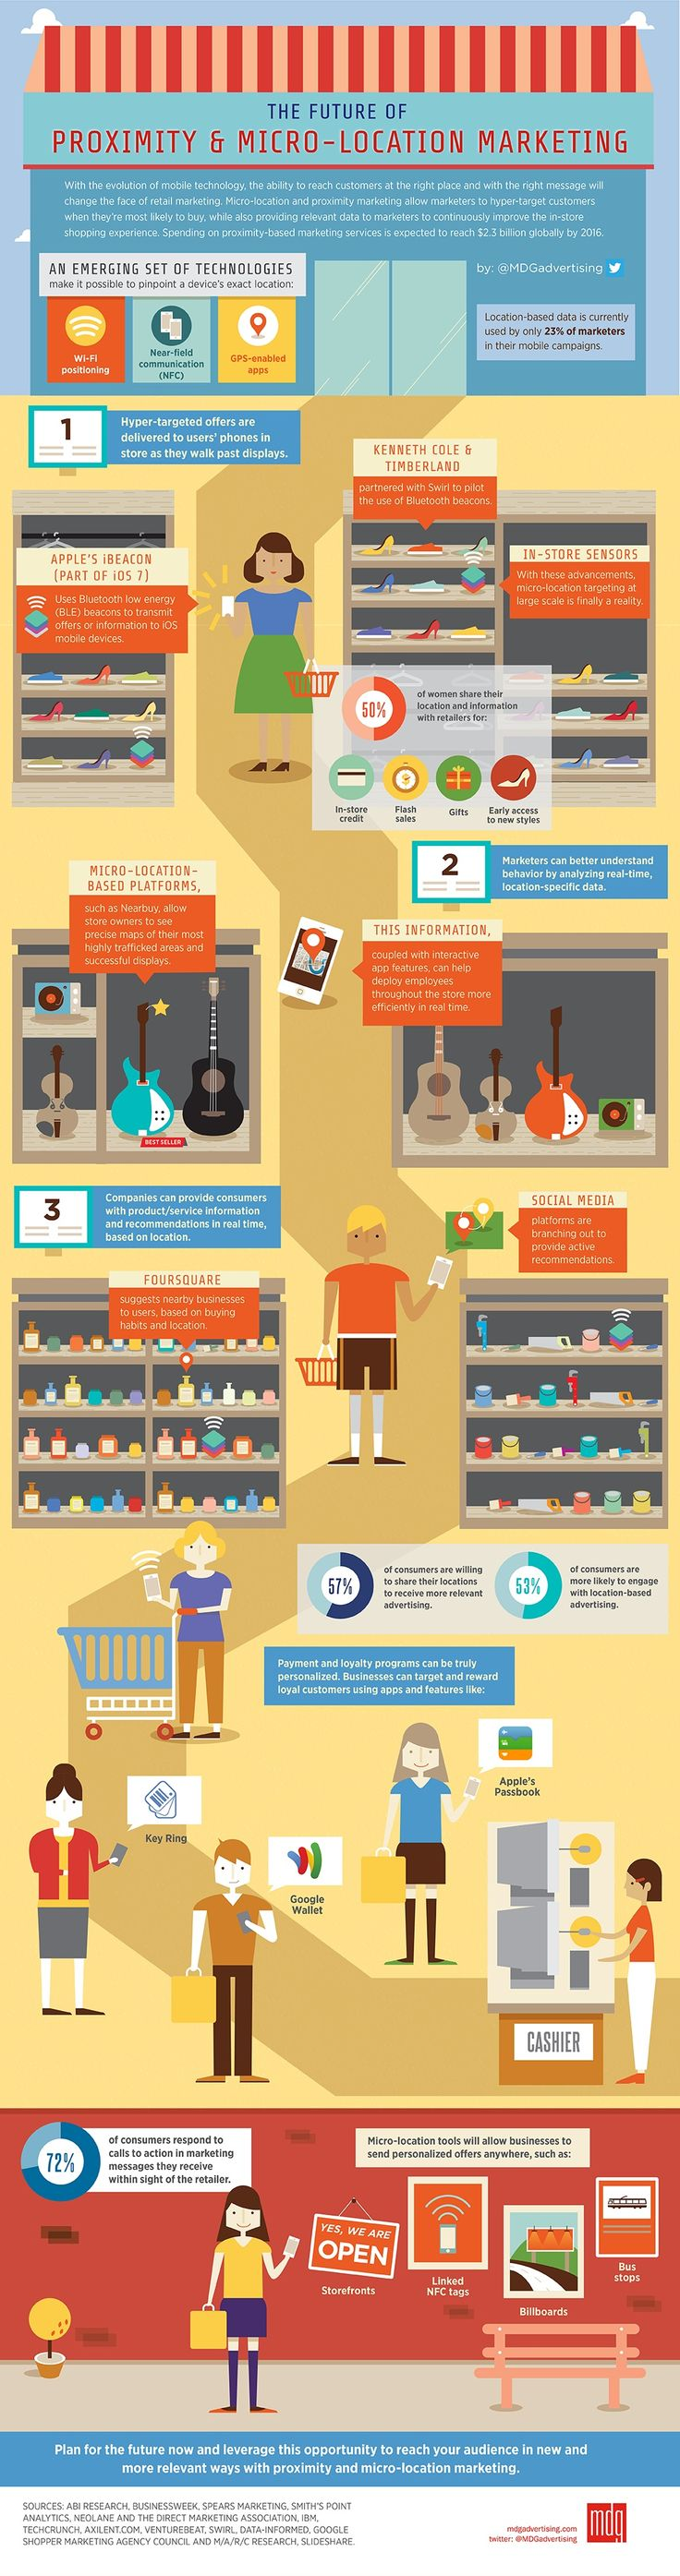 THE FUTURE OF PROXIMITY AND MICRO-LOCATION MARKETING [INFOGRAPHIC]